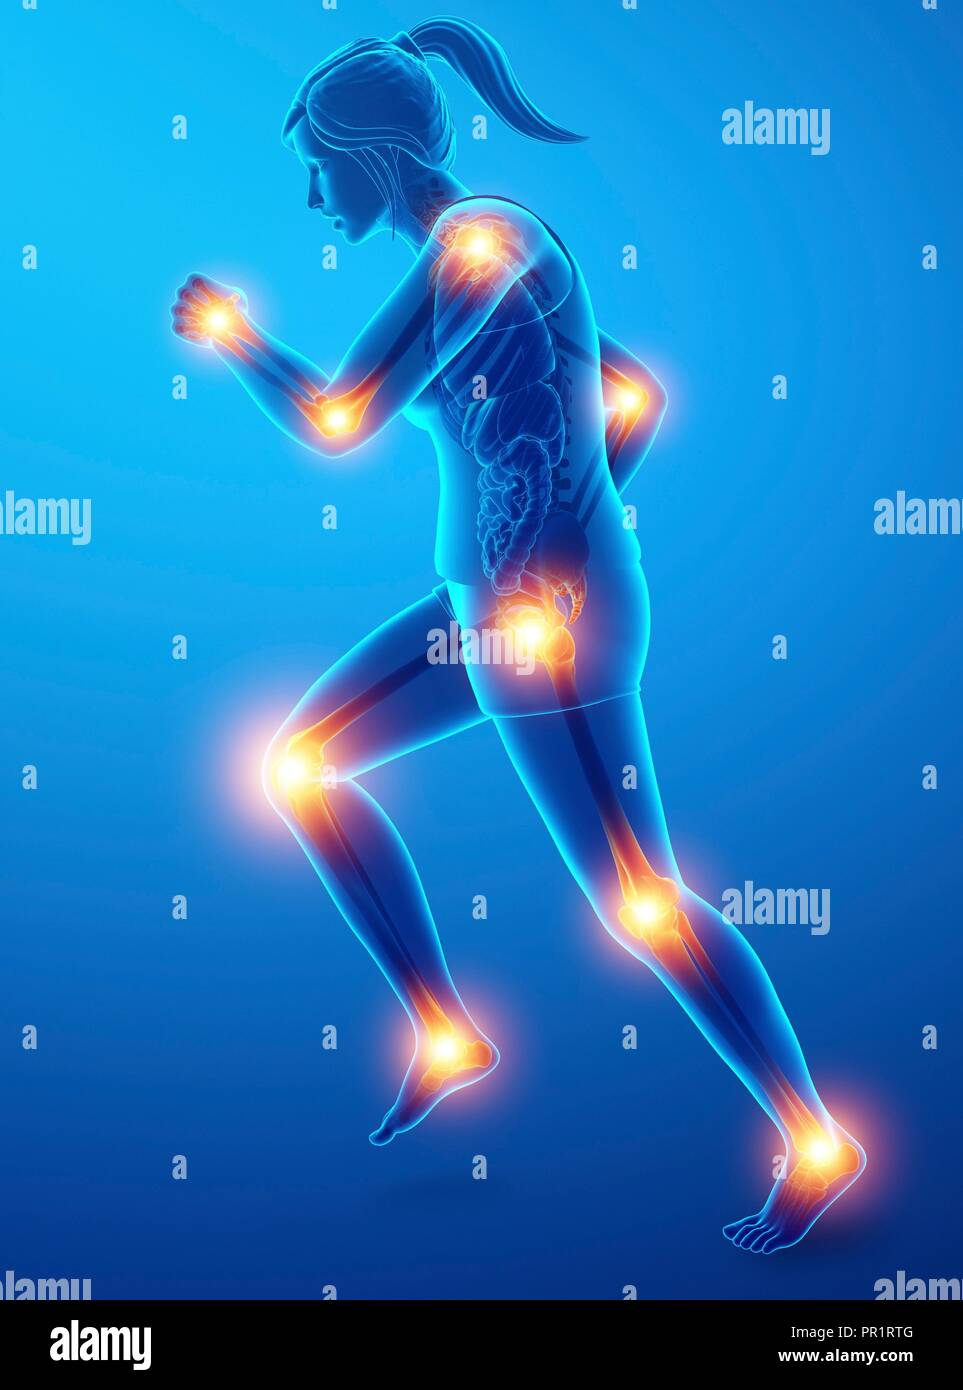 Woman with joint pain, computer illustration. - Stock Image